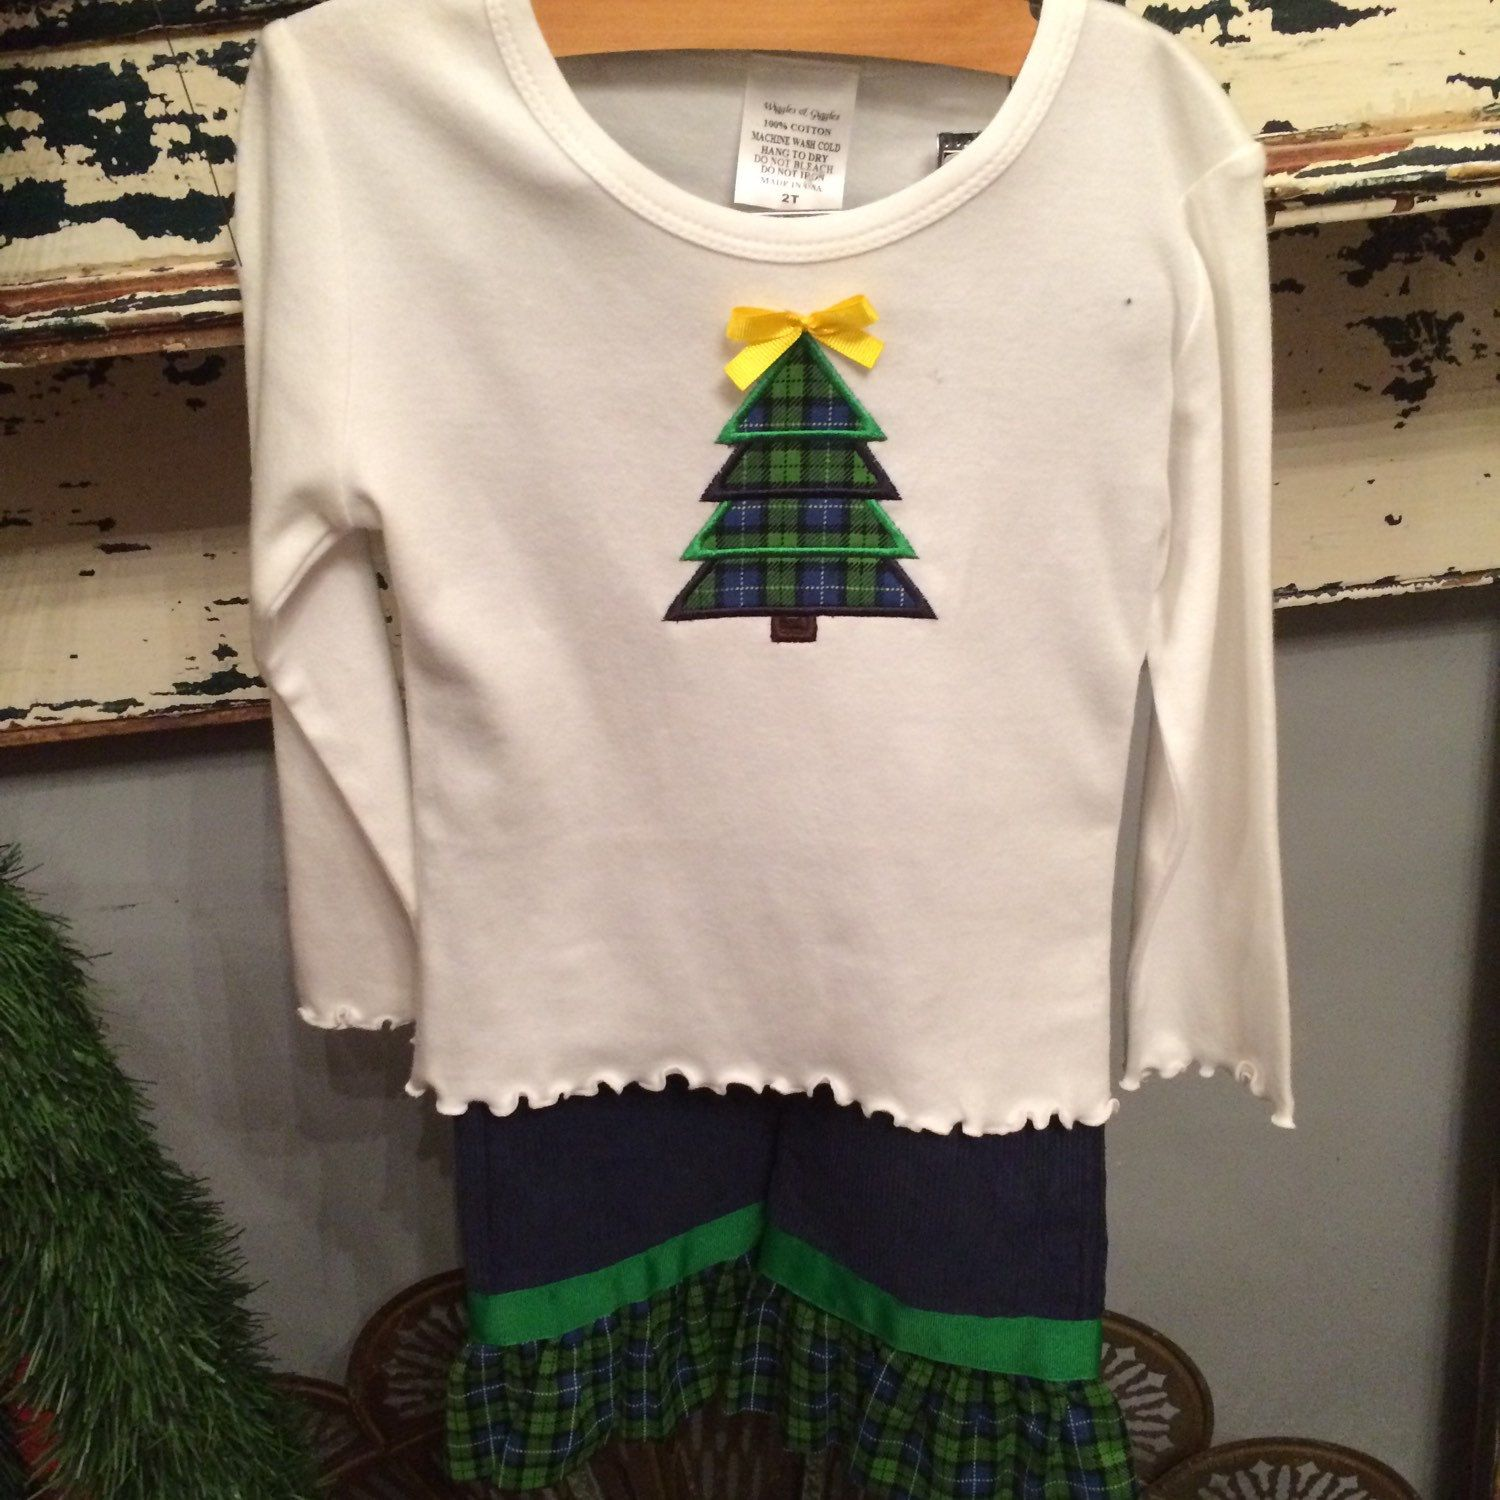 Toddler Girls 2 Toddler pants set.  Monag shirt and corduroy pants with plaid ruffle matching the appliquéd tree design on shirt.  Ready for shipment and Santa pictures.